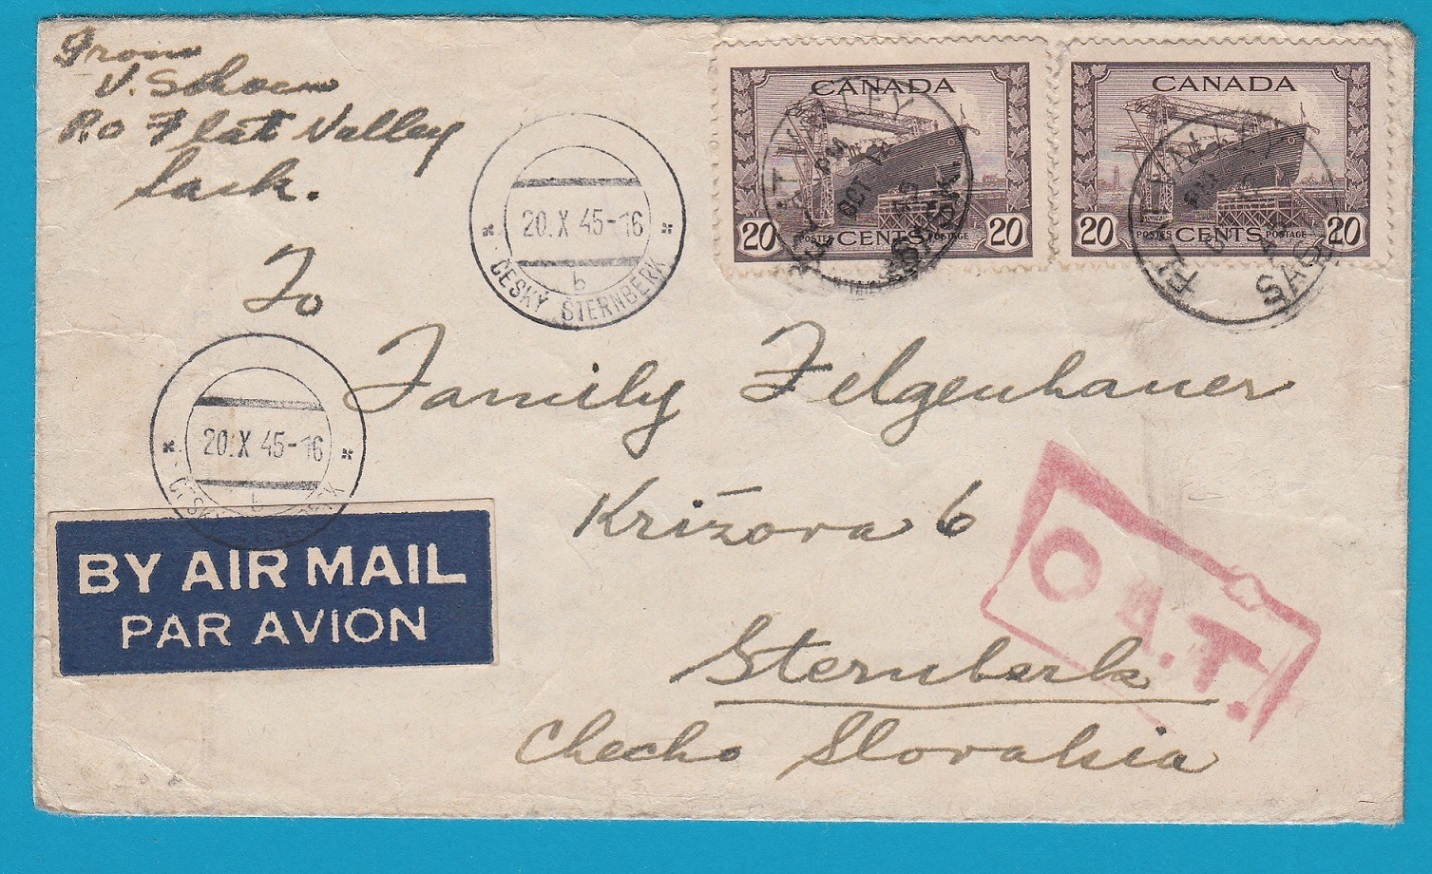 CANADA airmail cover 1945 Flat Valley with OAT cachet to Czechoslovakia AI094